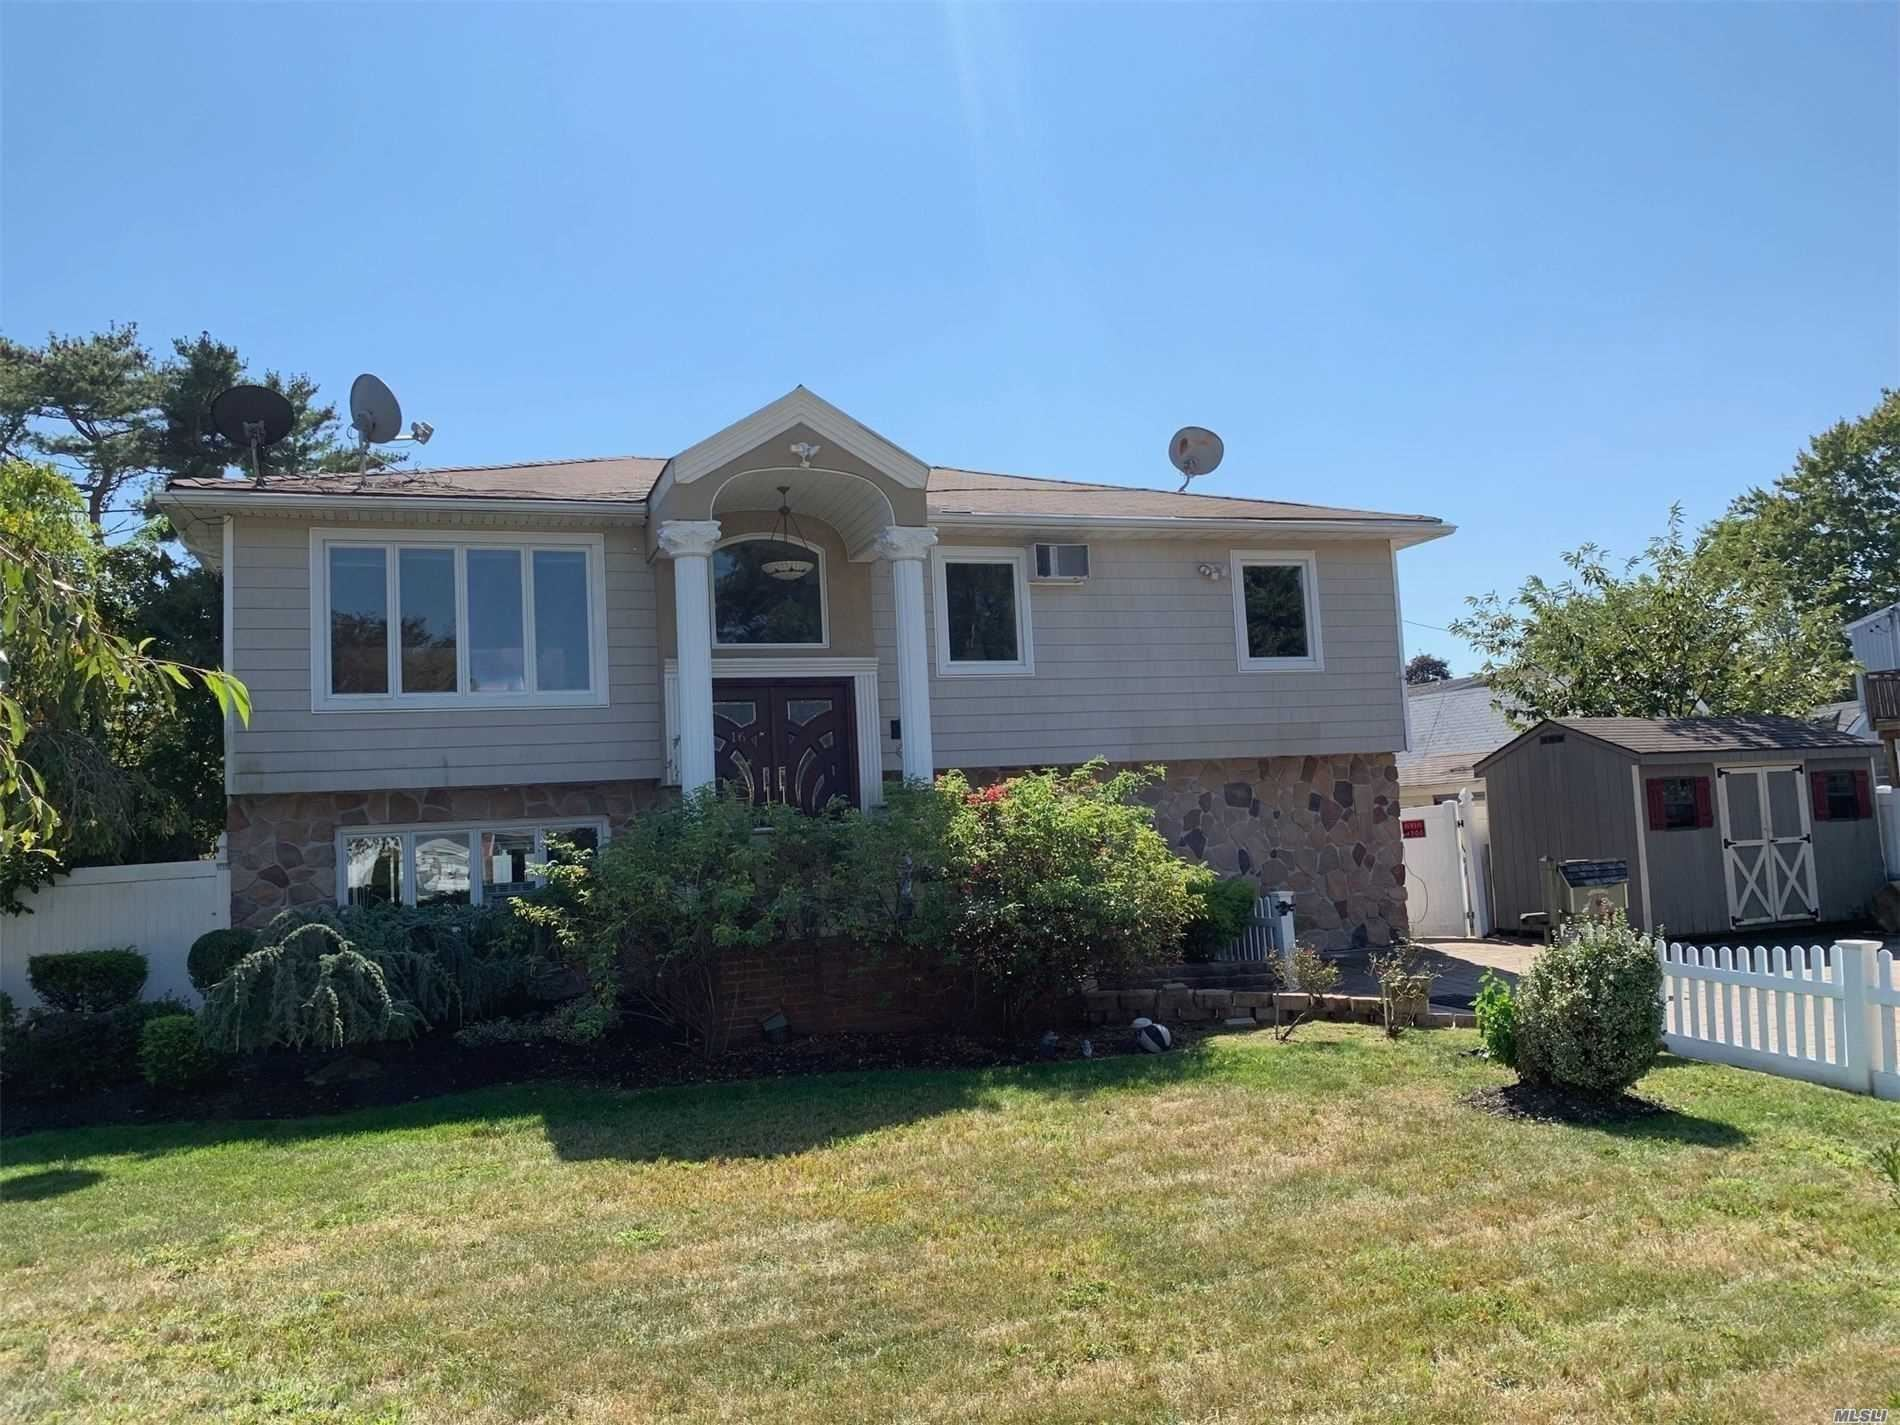 16 Dorset Court, Farmingdale, NY 11735 - MLS#: 3200370